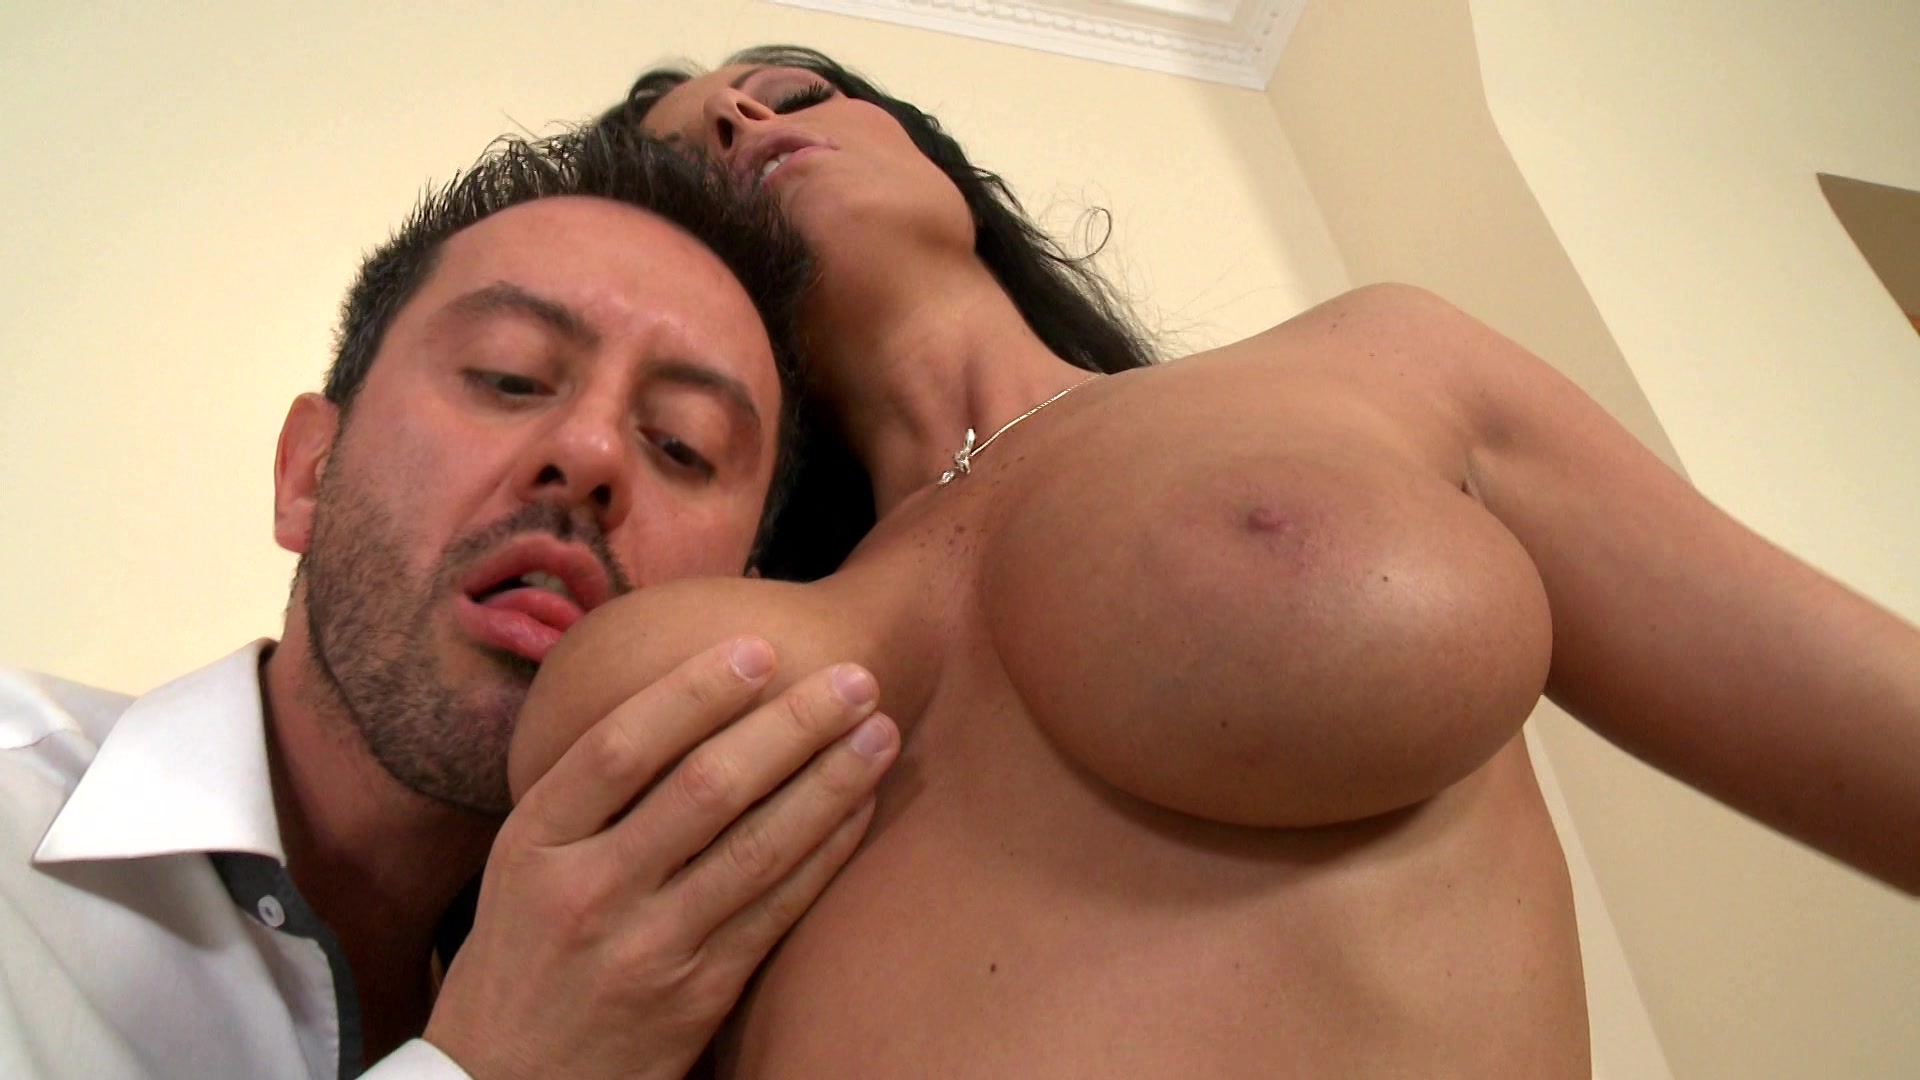 Man sucking breasts video girl swing fuck